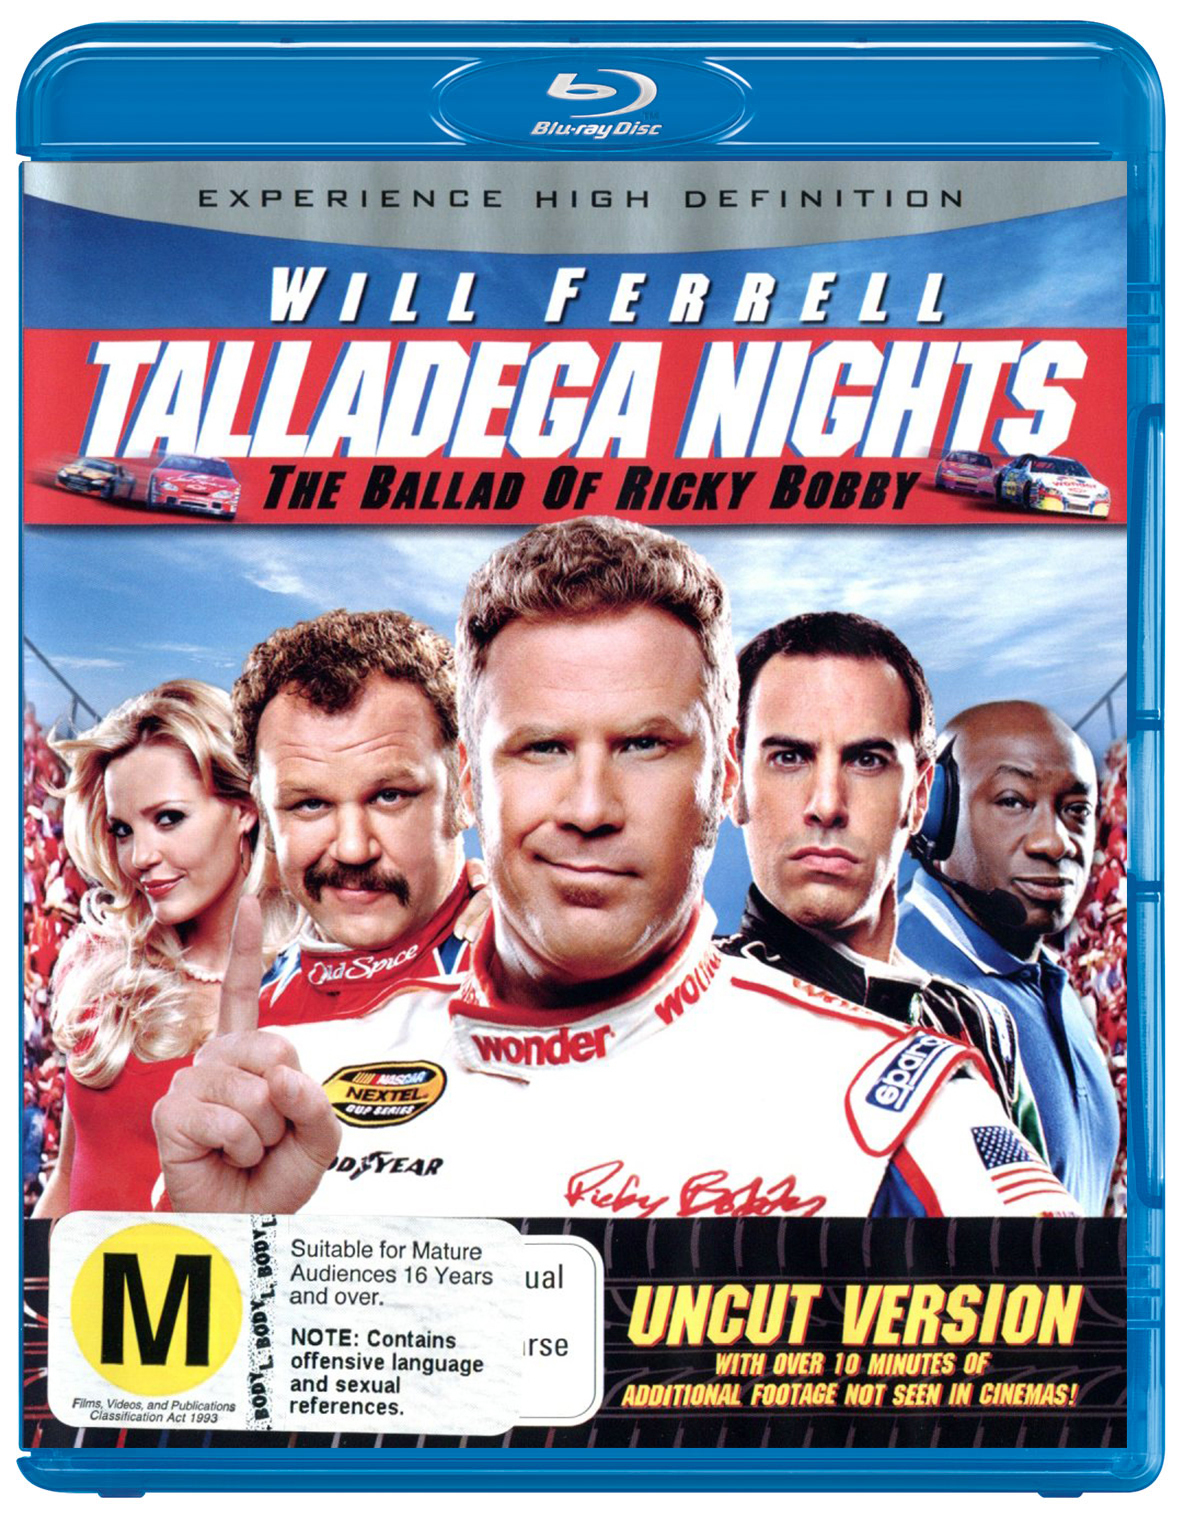 Talladega Nights - The Ballad Of Ricky Bobby: Uncut Version on Blu-ray image